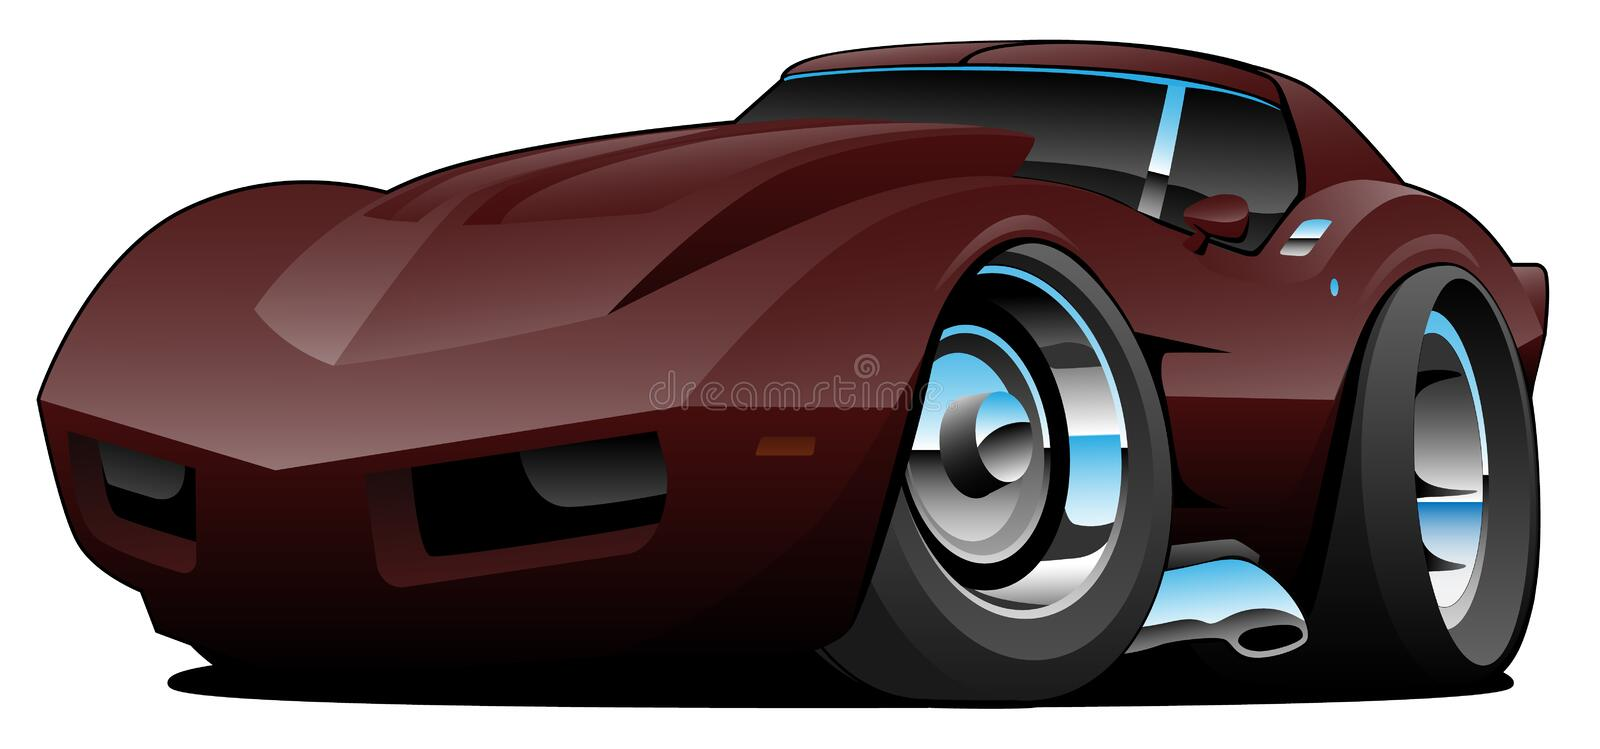 Classic Seventies American Sports Car Cartoon Isolated Vector Illustration royalty free illustration